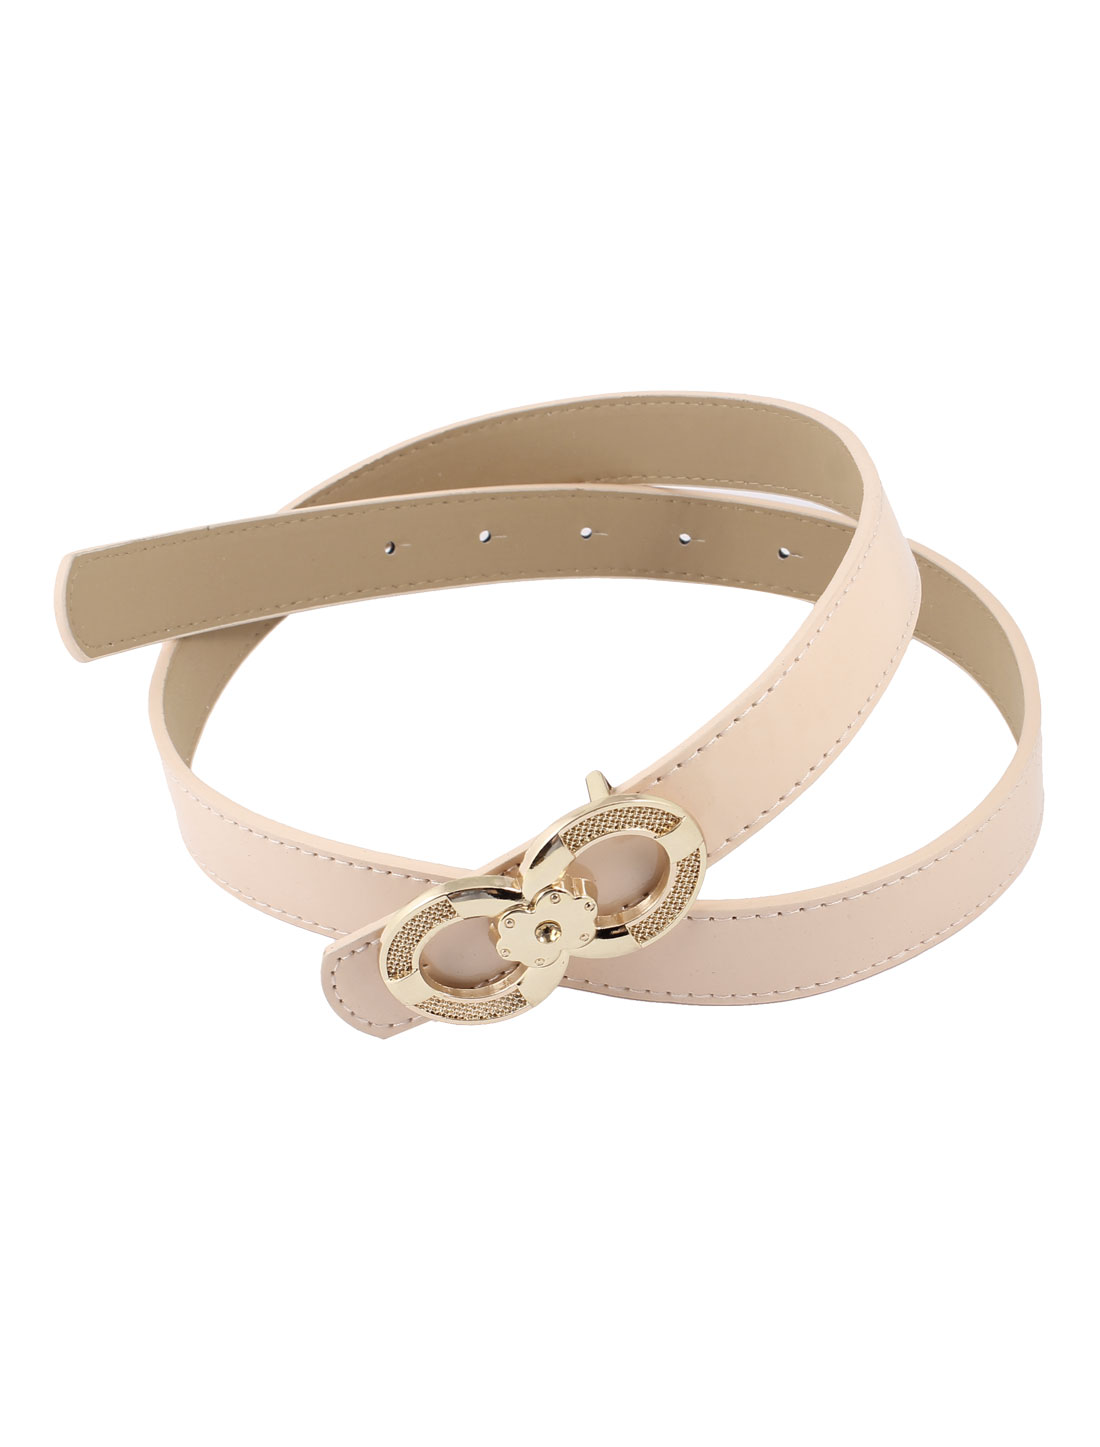 Metal 8 Shaped Buckle Patent Leather Waist Band Belt Pink for Women